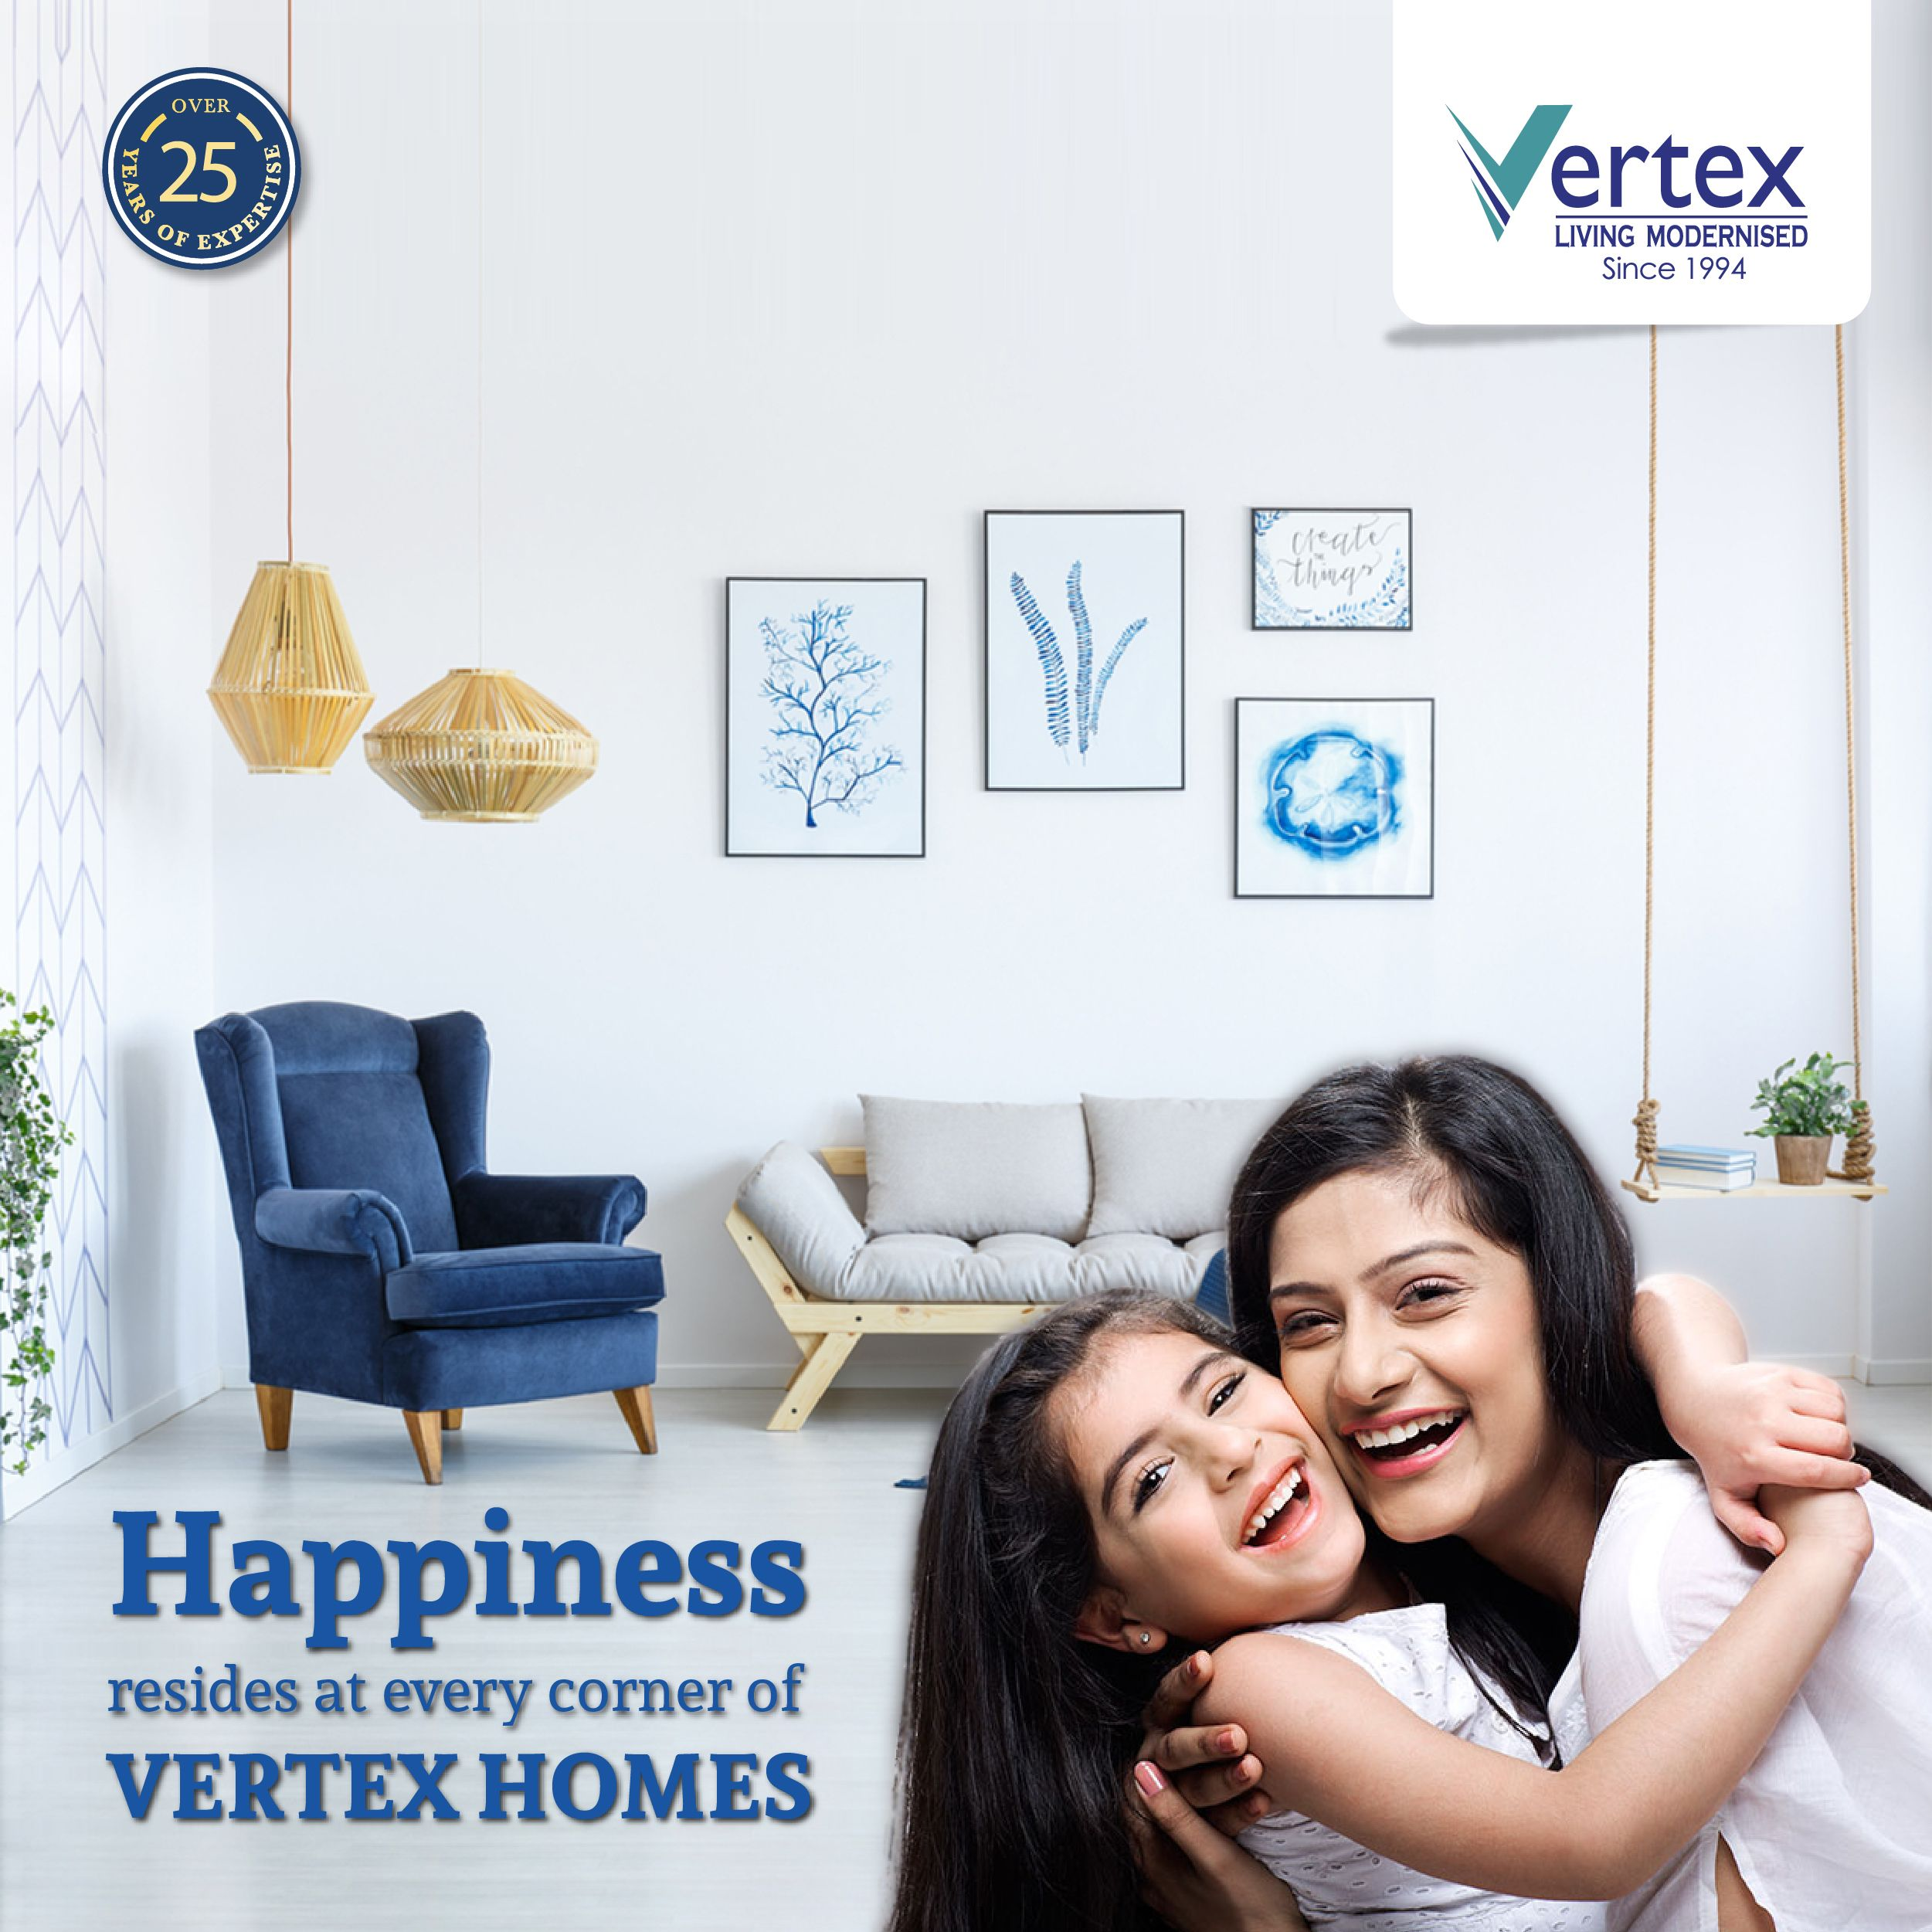 Happiness is an easy find at find at Vertex Homes as it resides at every corner of it.   #happiness #hppinessishere #happinessproject #happinessiskey #happy #happinessbegins #happinessresideshere #everycorner #vertexhomes #brand #dreamhome #owningyourhome #owningyourownhome #ownhome #ownyourhome #ownyourownhome #reality #dreamintoreality #apartments #plots #luxuryliving #luxurylifestyle #realestate #realestatehyderabad #hyderabad